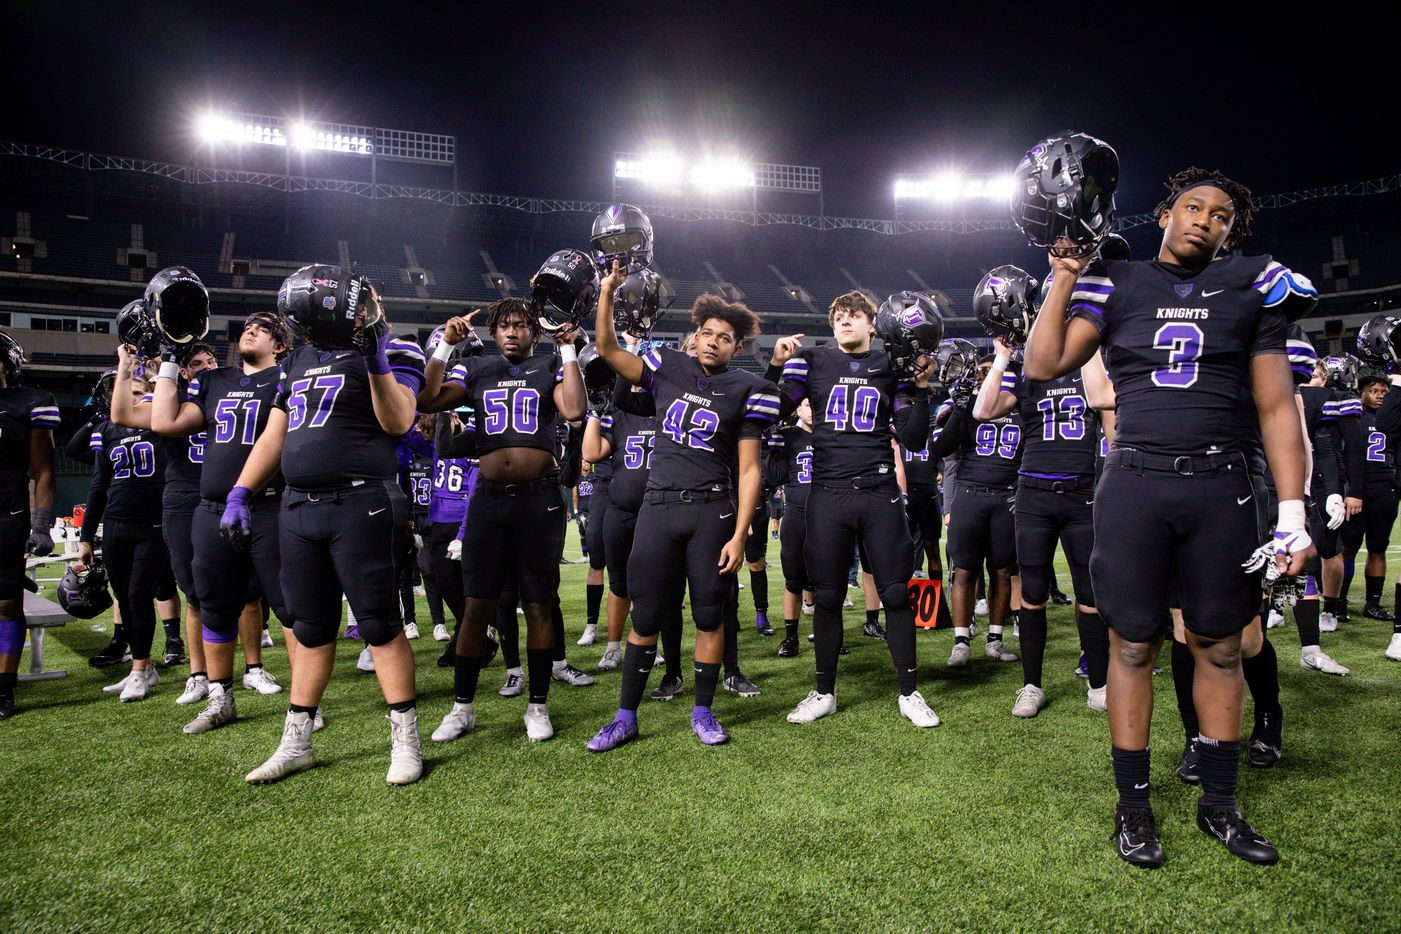 Frisco Independence players sing their school song after losing a Class 5A Division I area-round playoff game against Highland Park  at Globe Life Park in Arlington on Thursday, Dec. 17, 2020. Highland Park won 42-20. (Juan Figueroa/ The Dallas Morning News)